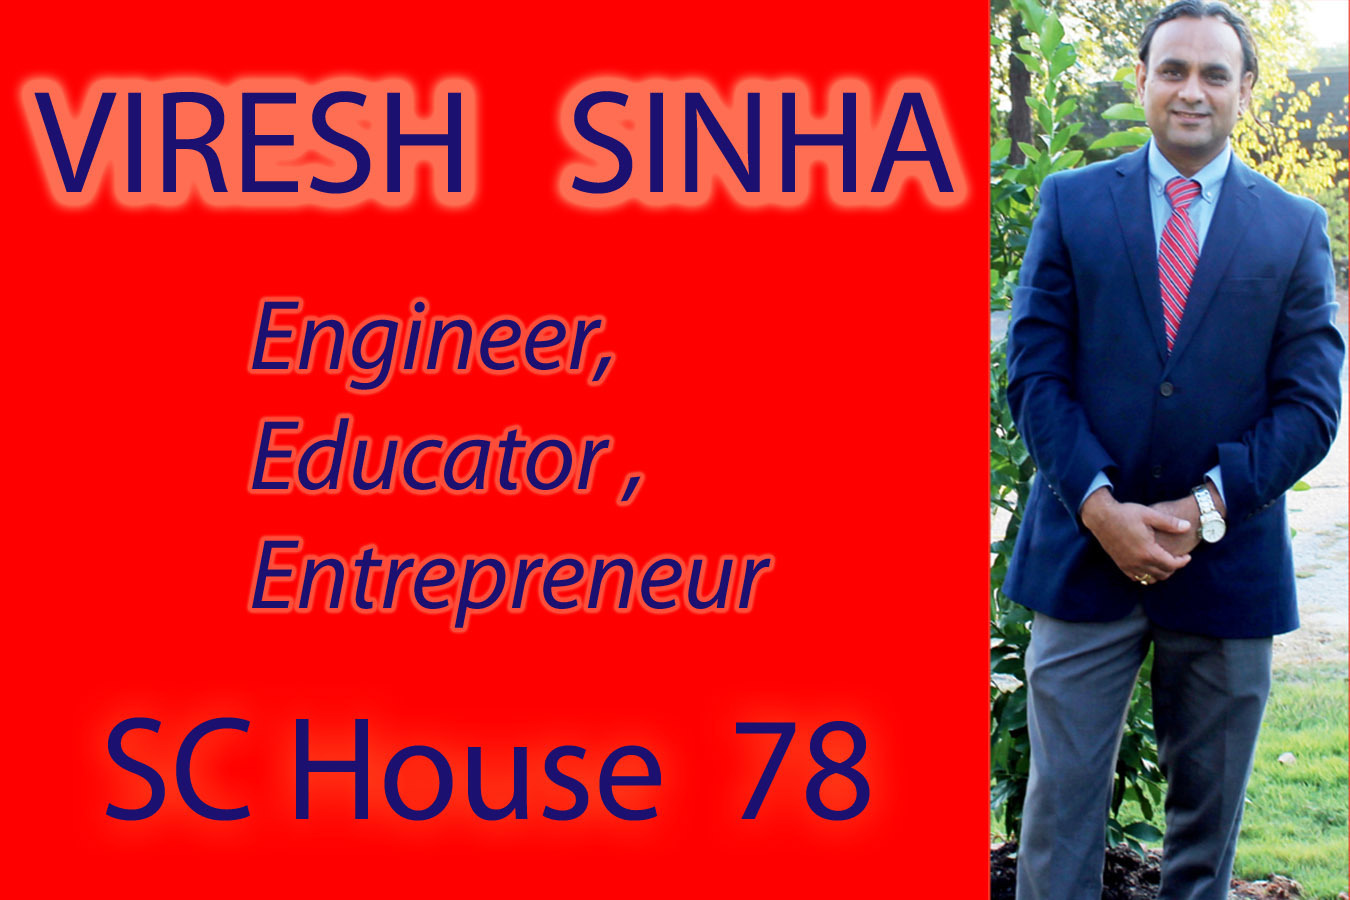 Viresh sinha win red edited 1